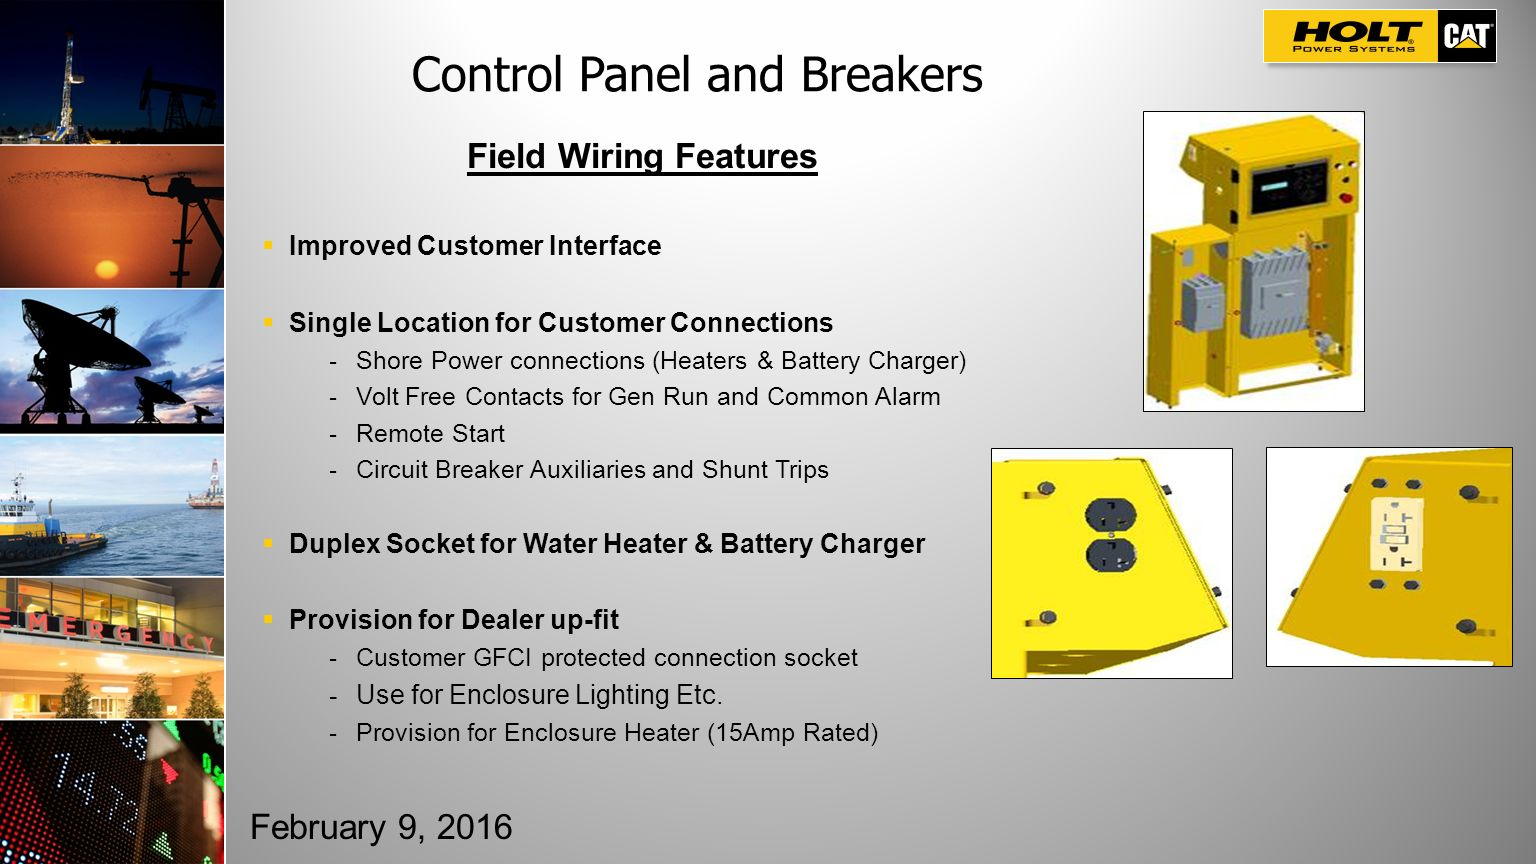 Cat Electric Power Compact Diesel Next Generation Product Launch Duplex Panel This Controller Includes Circuit Breakers And Cat7 Control